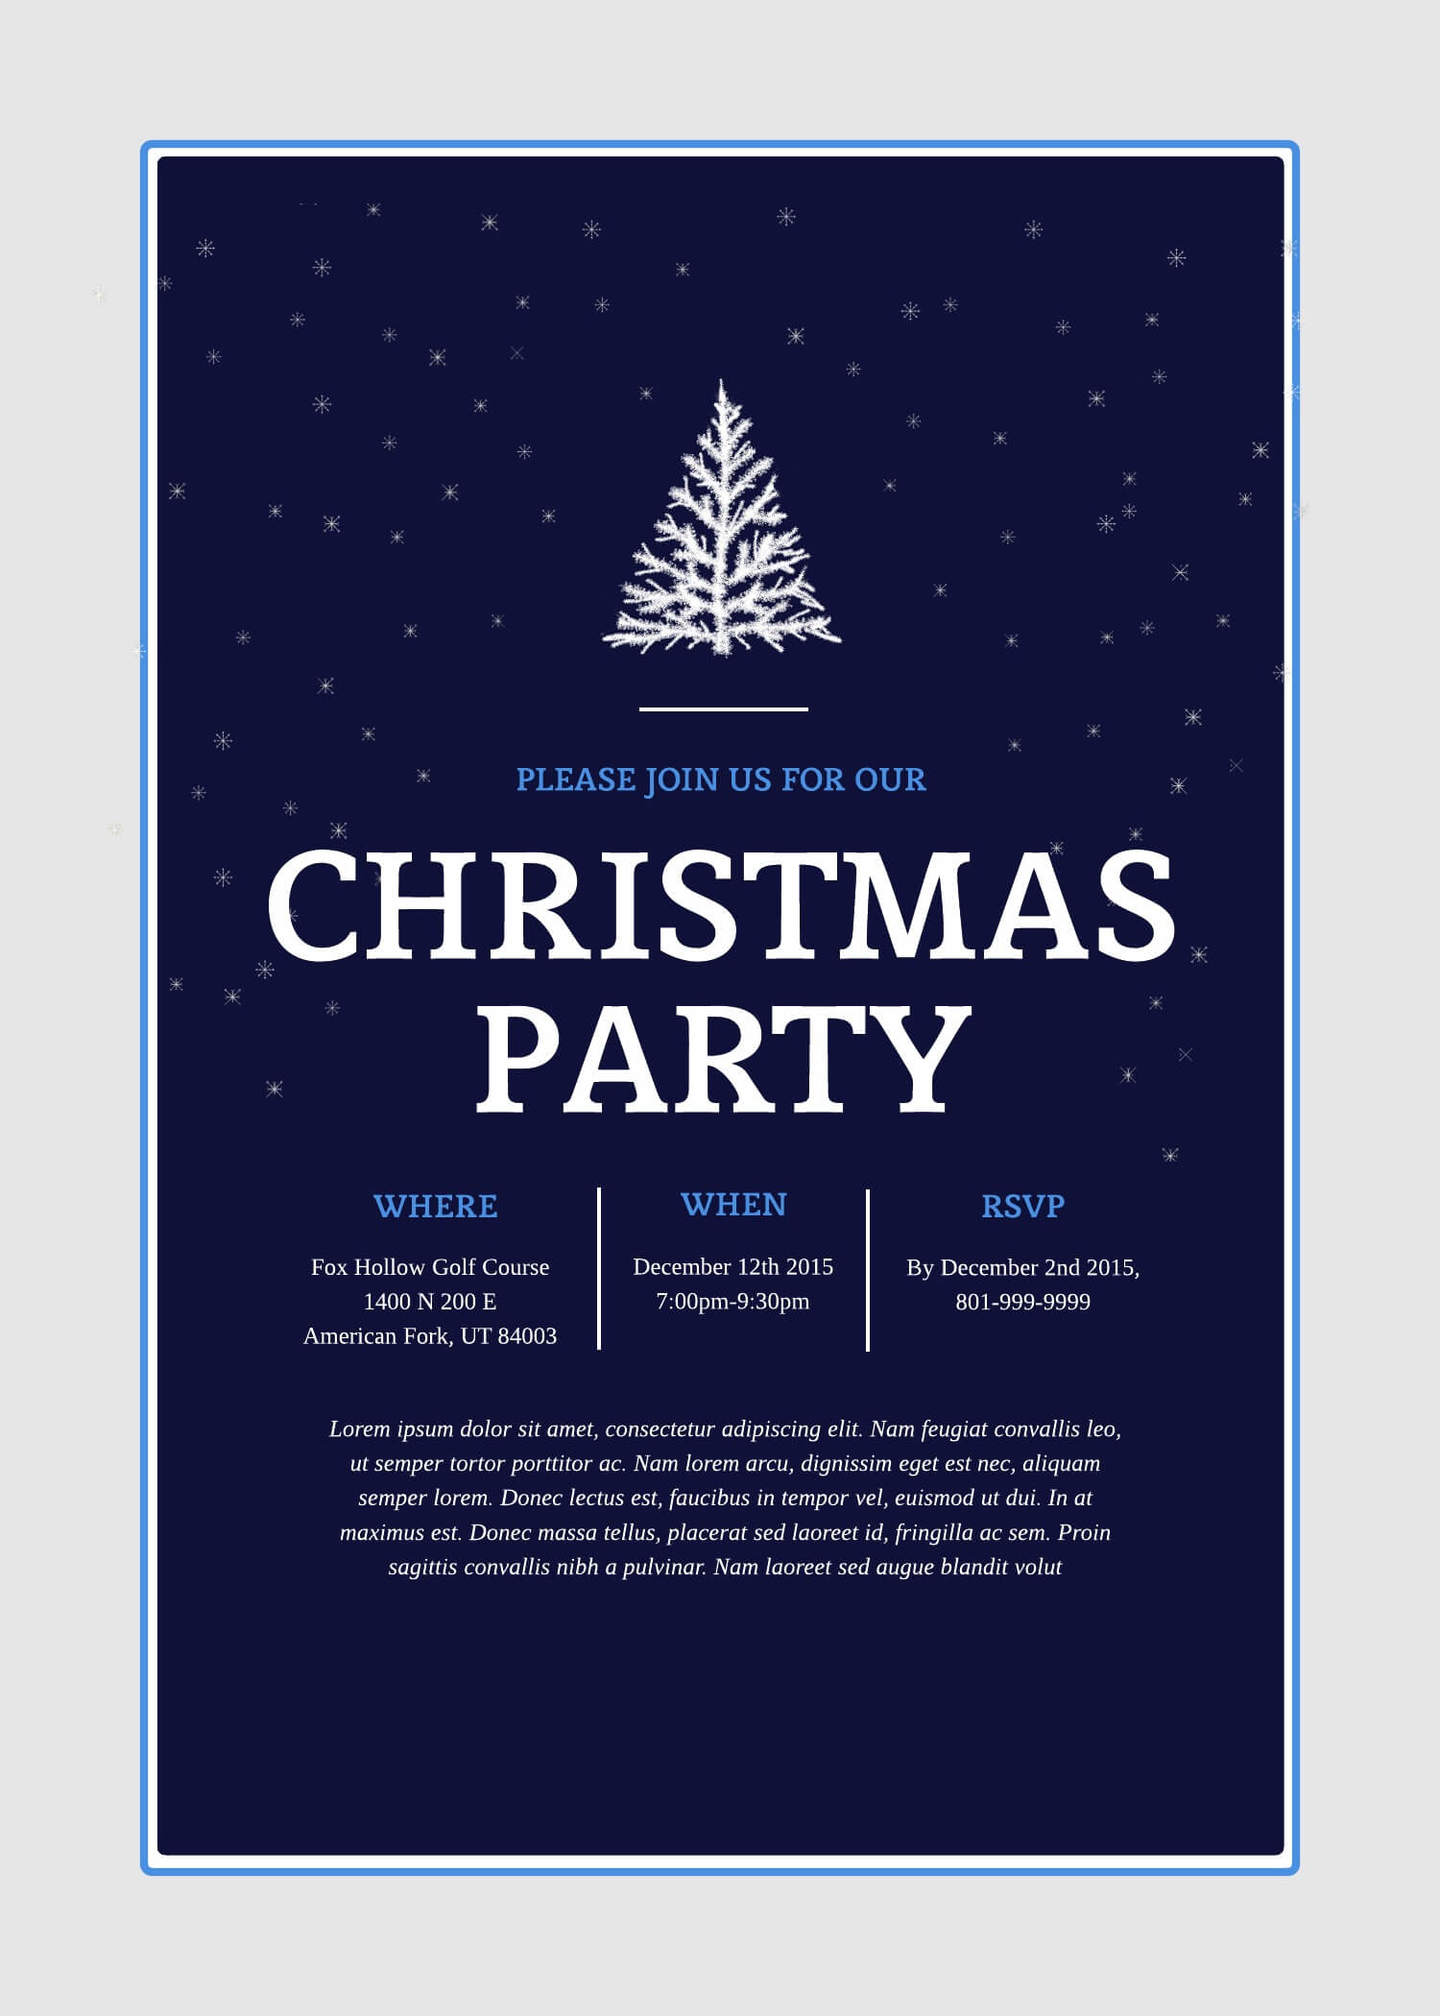 Free Holiday Templates Examples Lucidpress - Corporate party invitation template